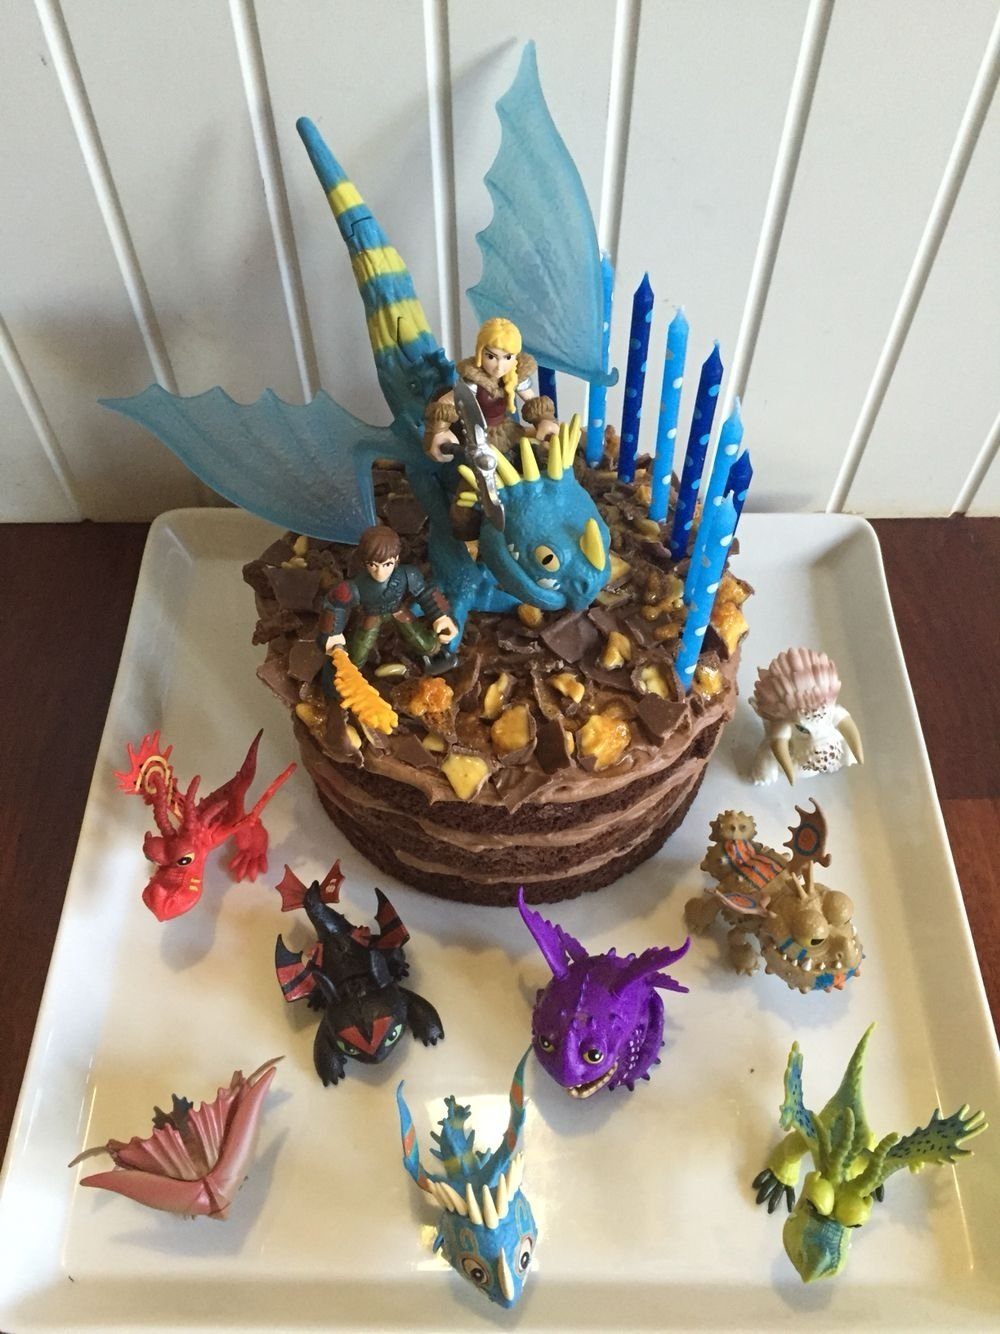 10 Attractive How To Train Your Dragon Party Ideas how to train your dragon astrid birthday cake hope bday 2020